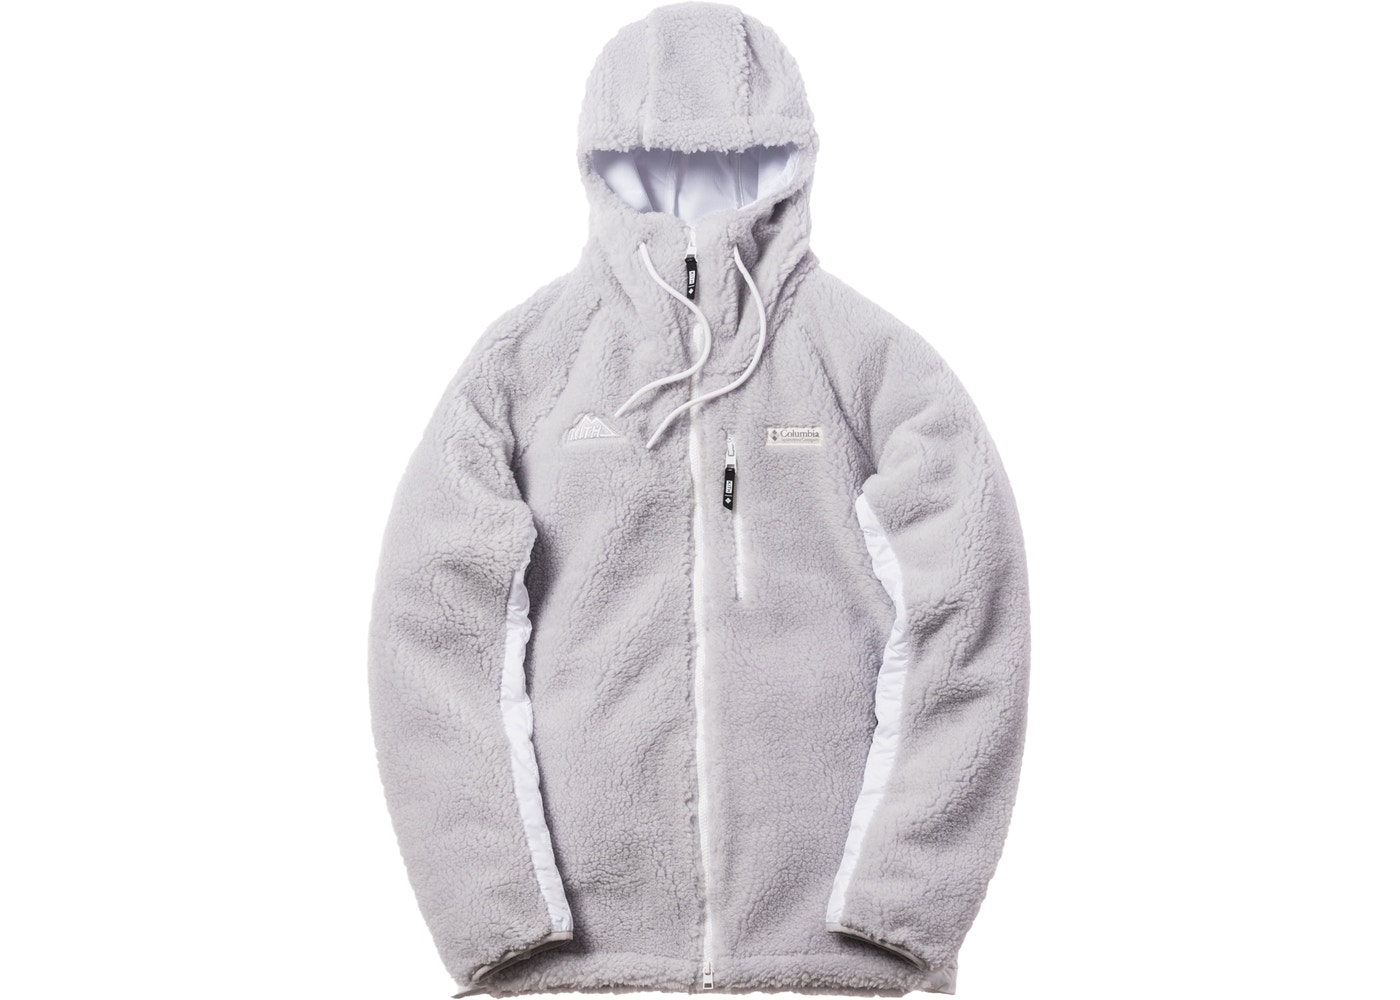 Kith x Columbia High Pile Full Zip Jacket Grey Ice